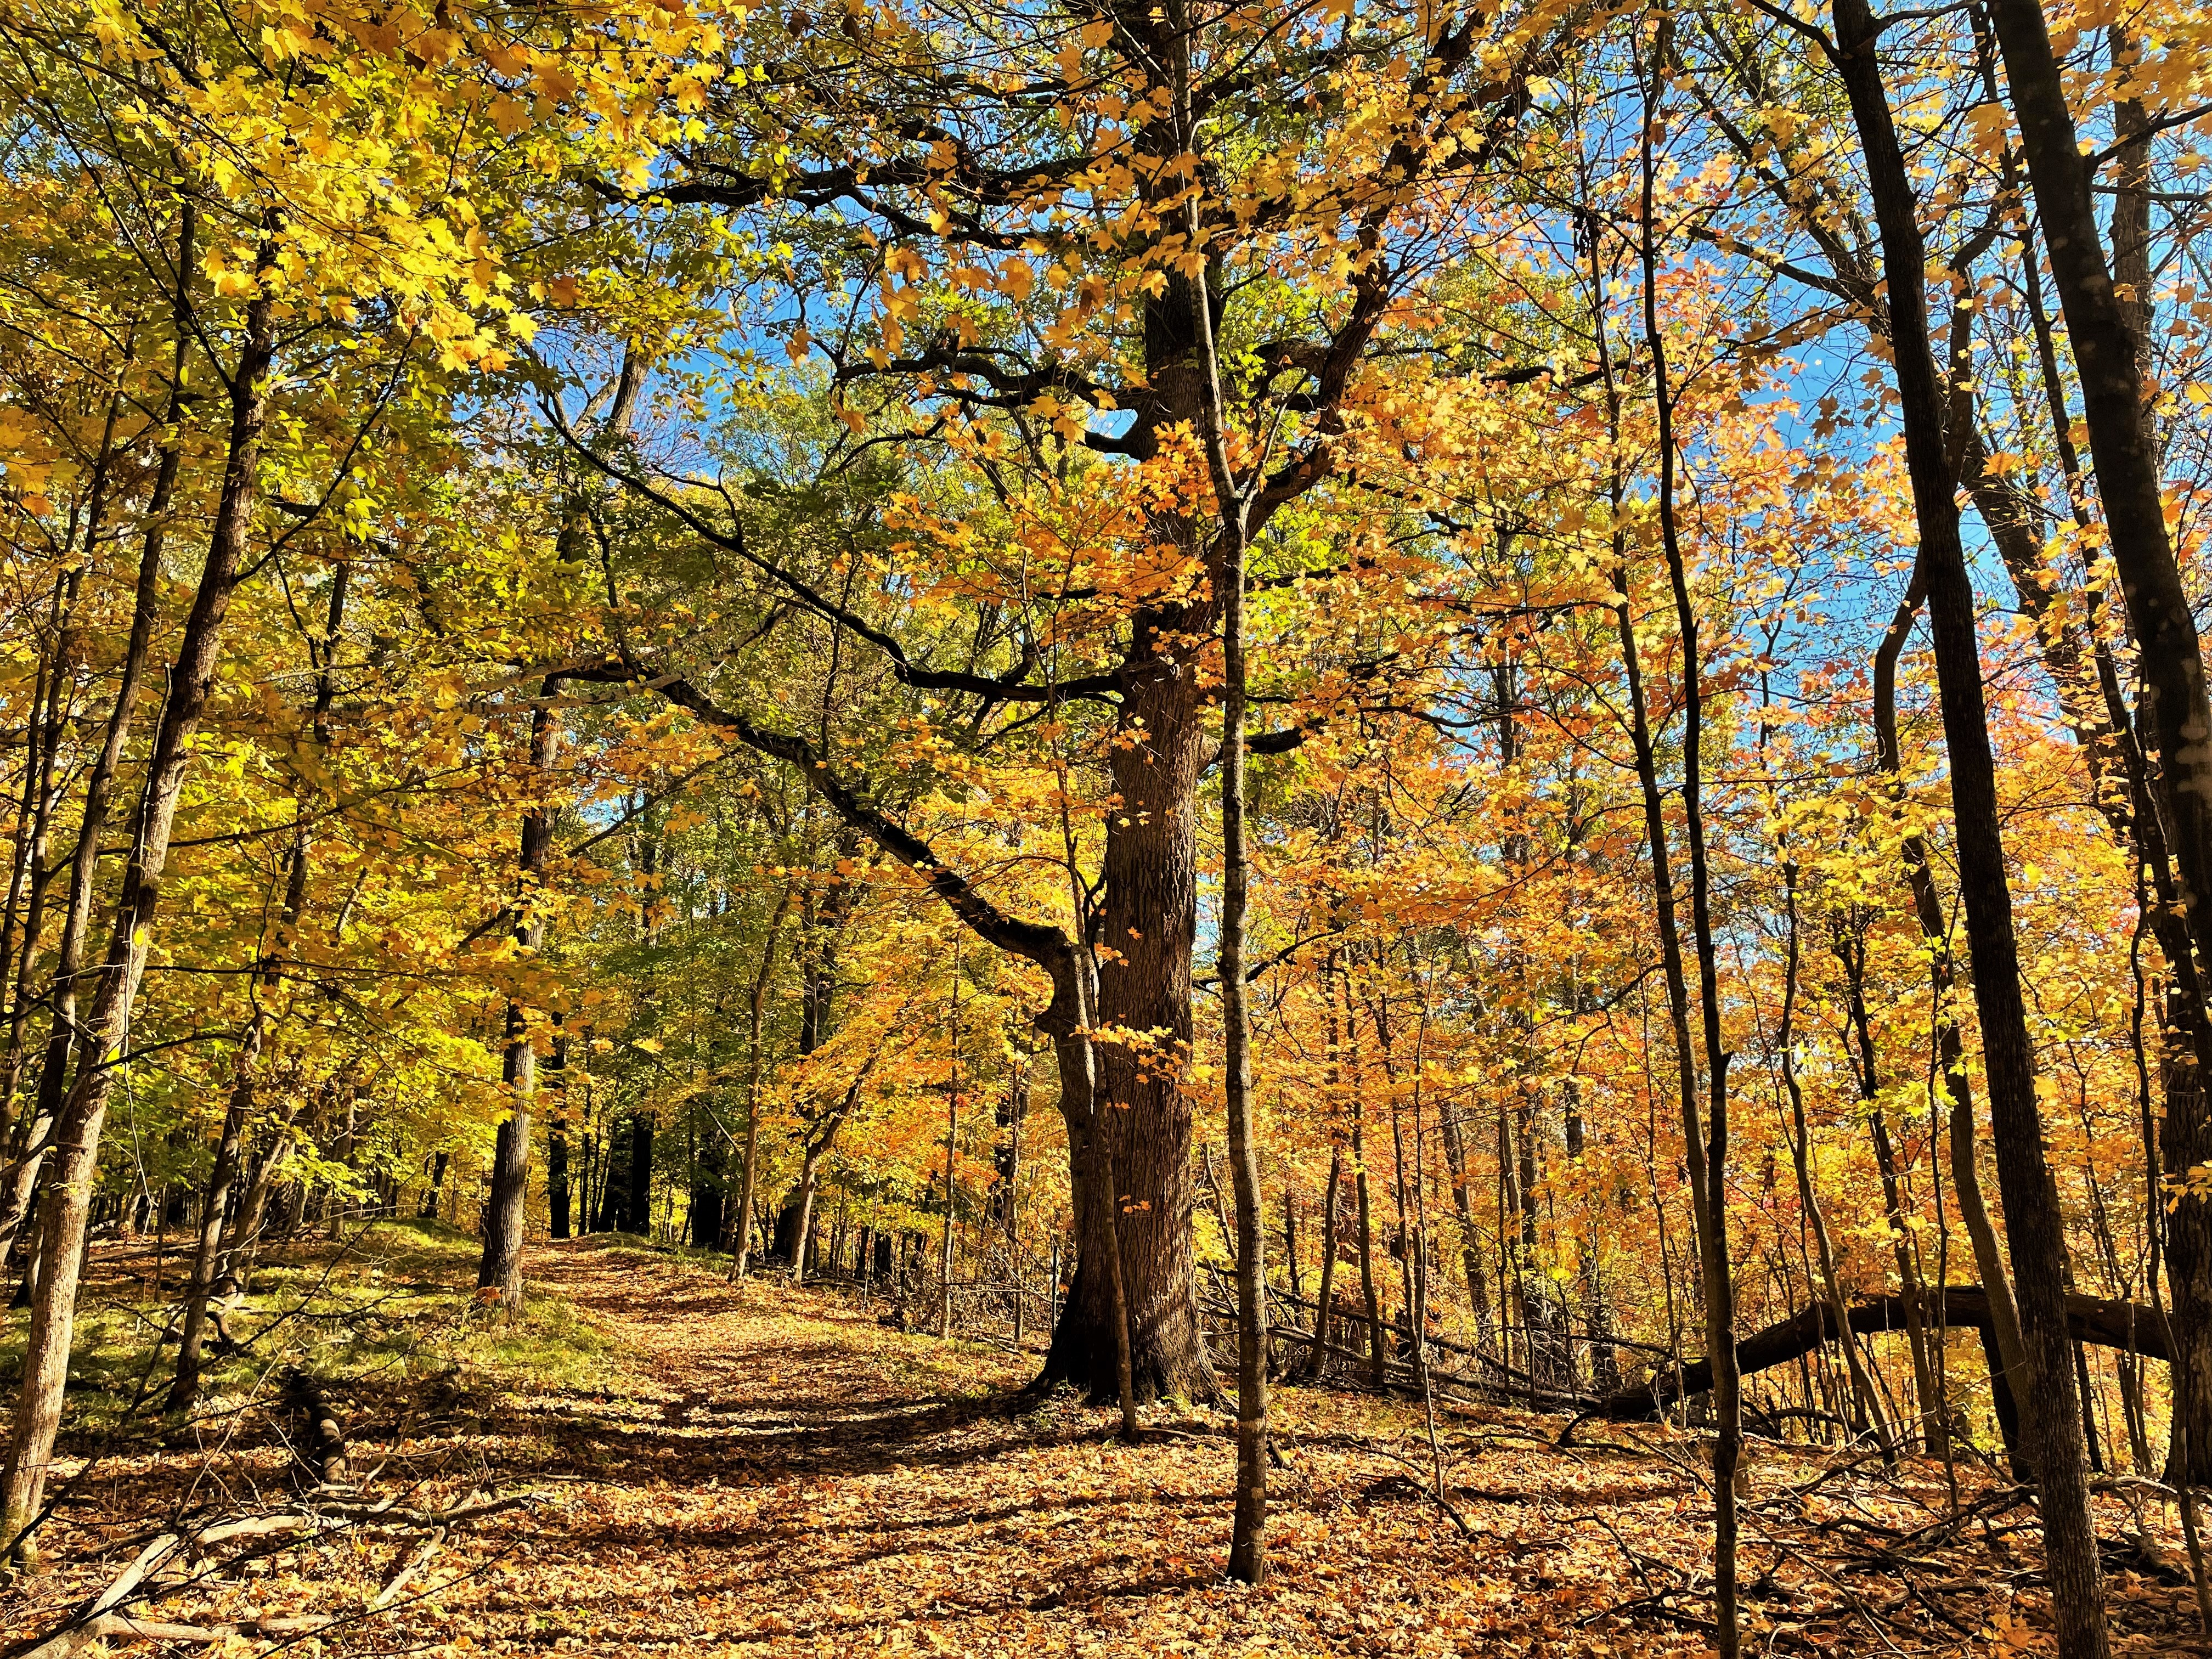 Yellow leaves blanket a dirt path through the woods. The path is lined by trees featuring bright yellow leaves.